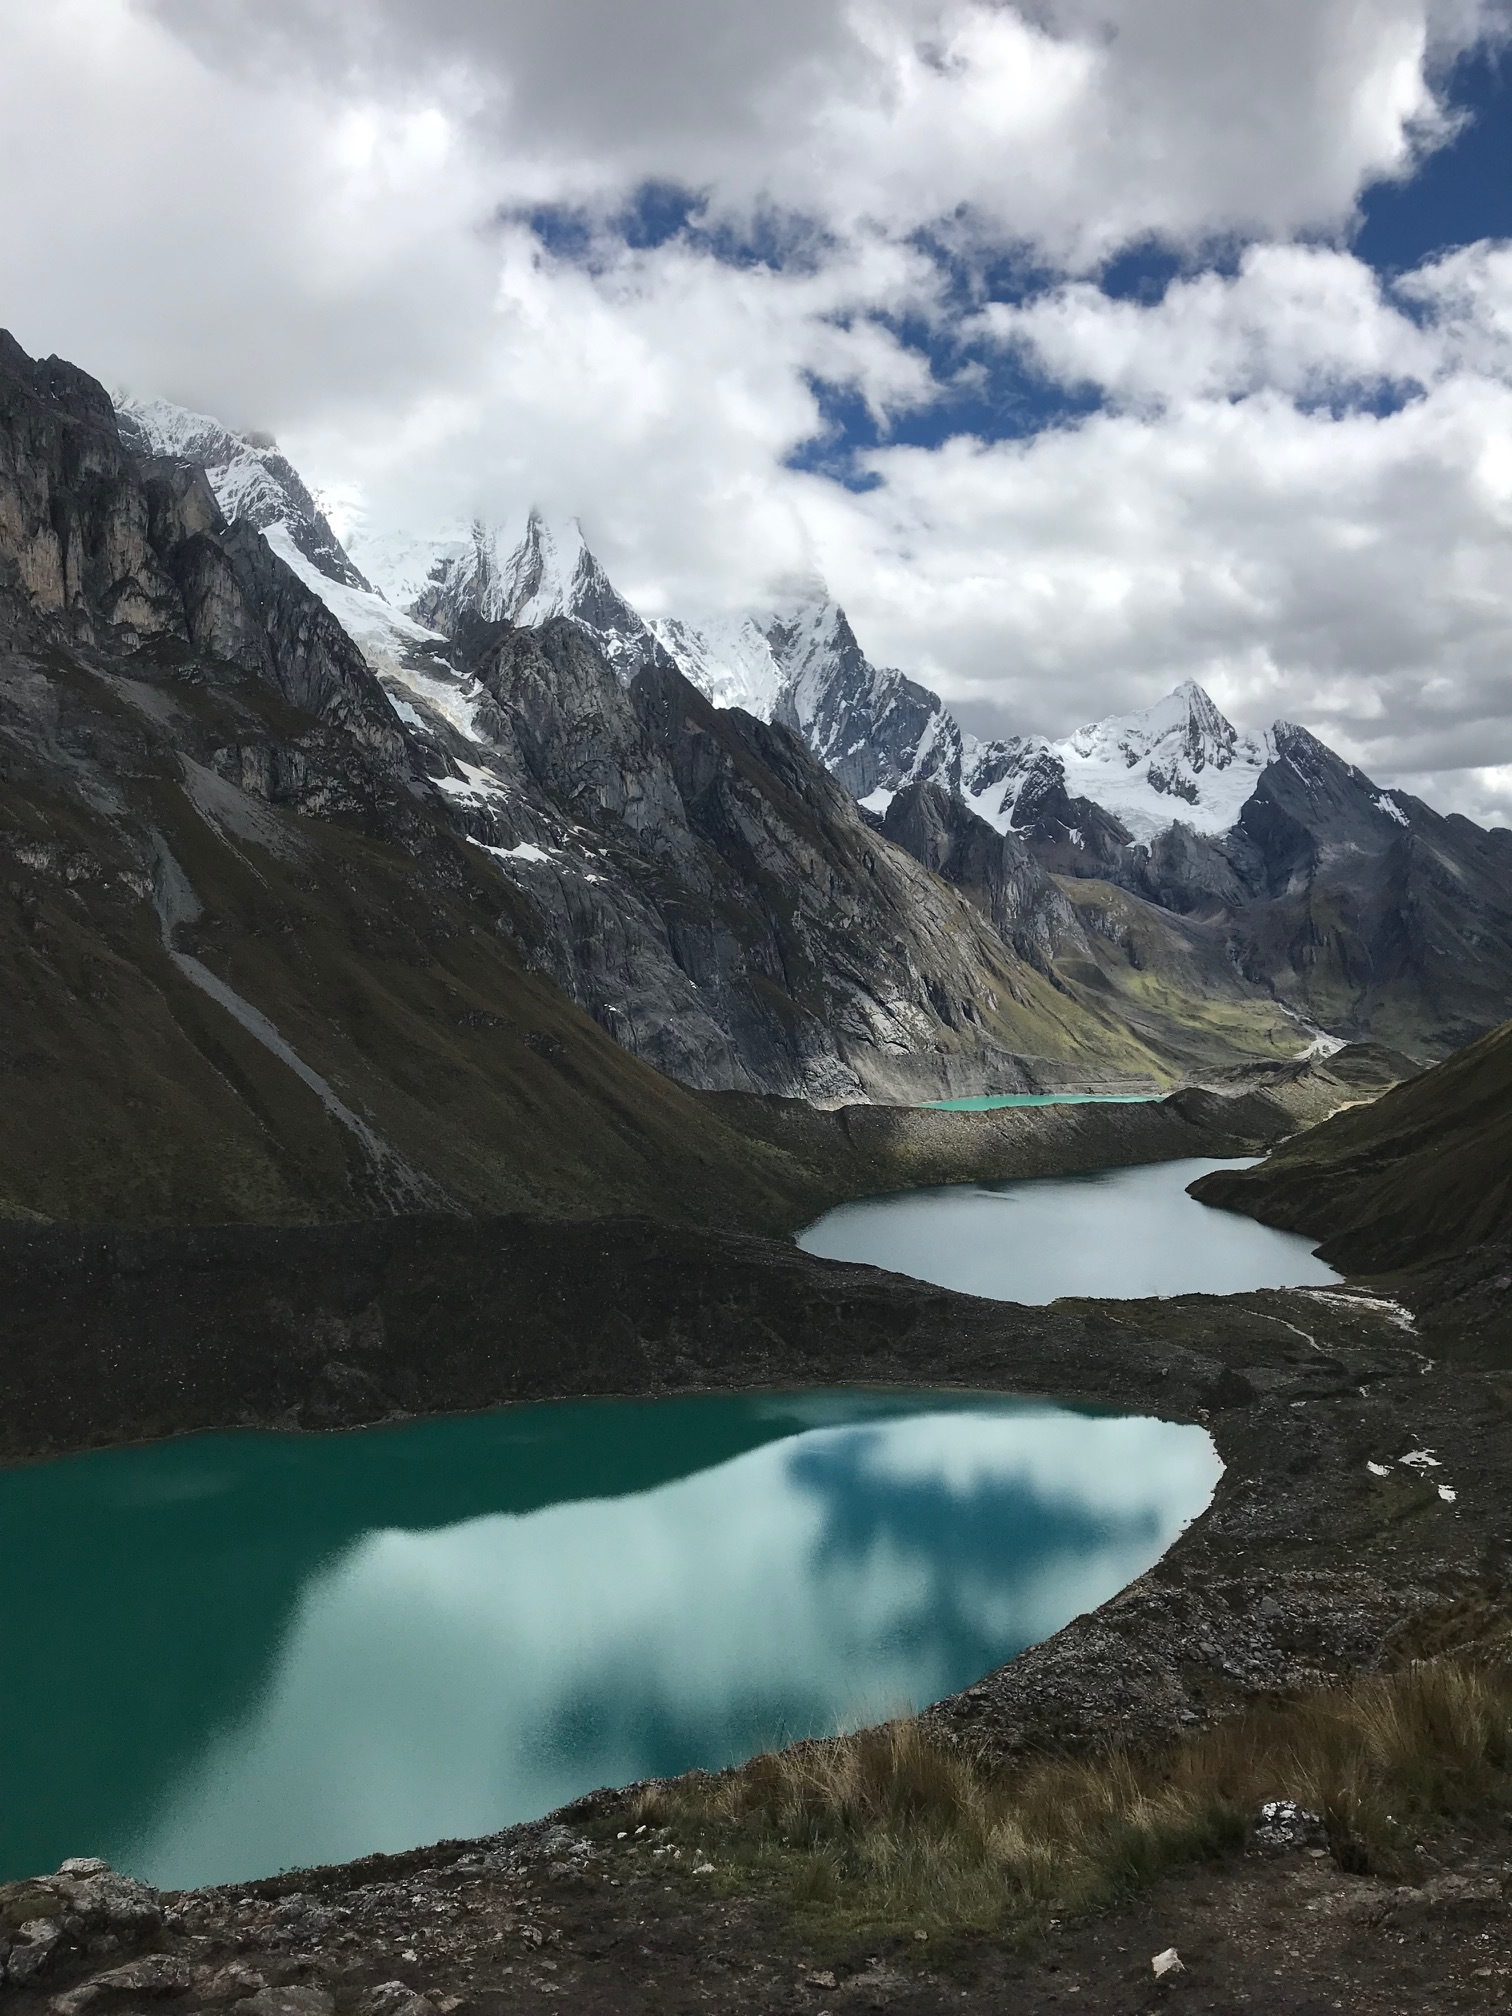 2 green lakes in a valley of snow capped mountains